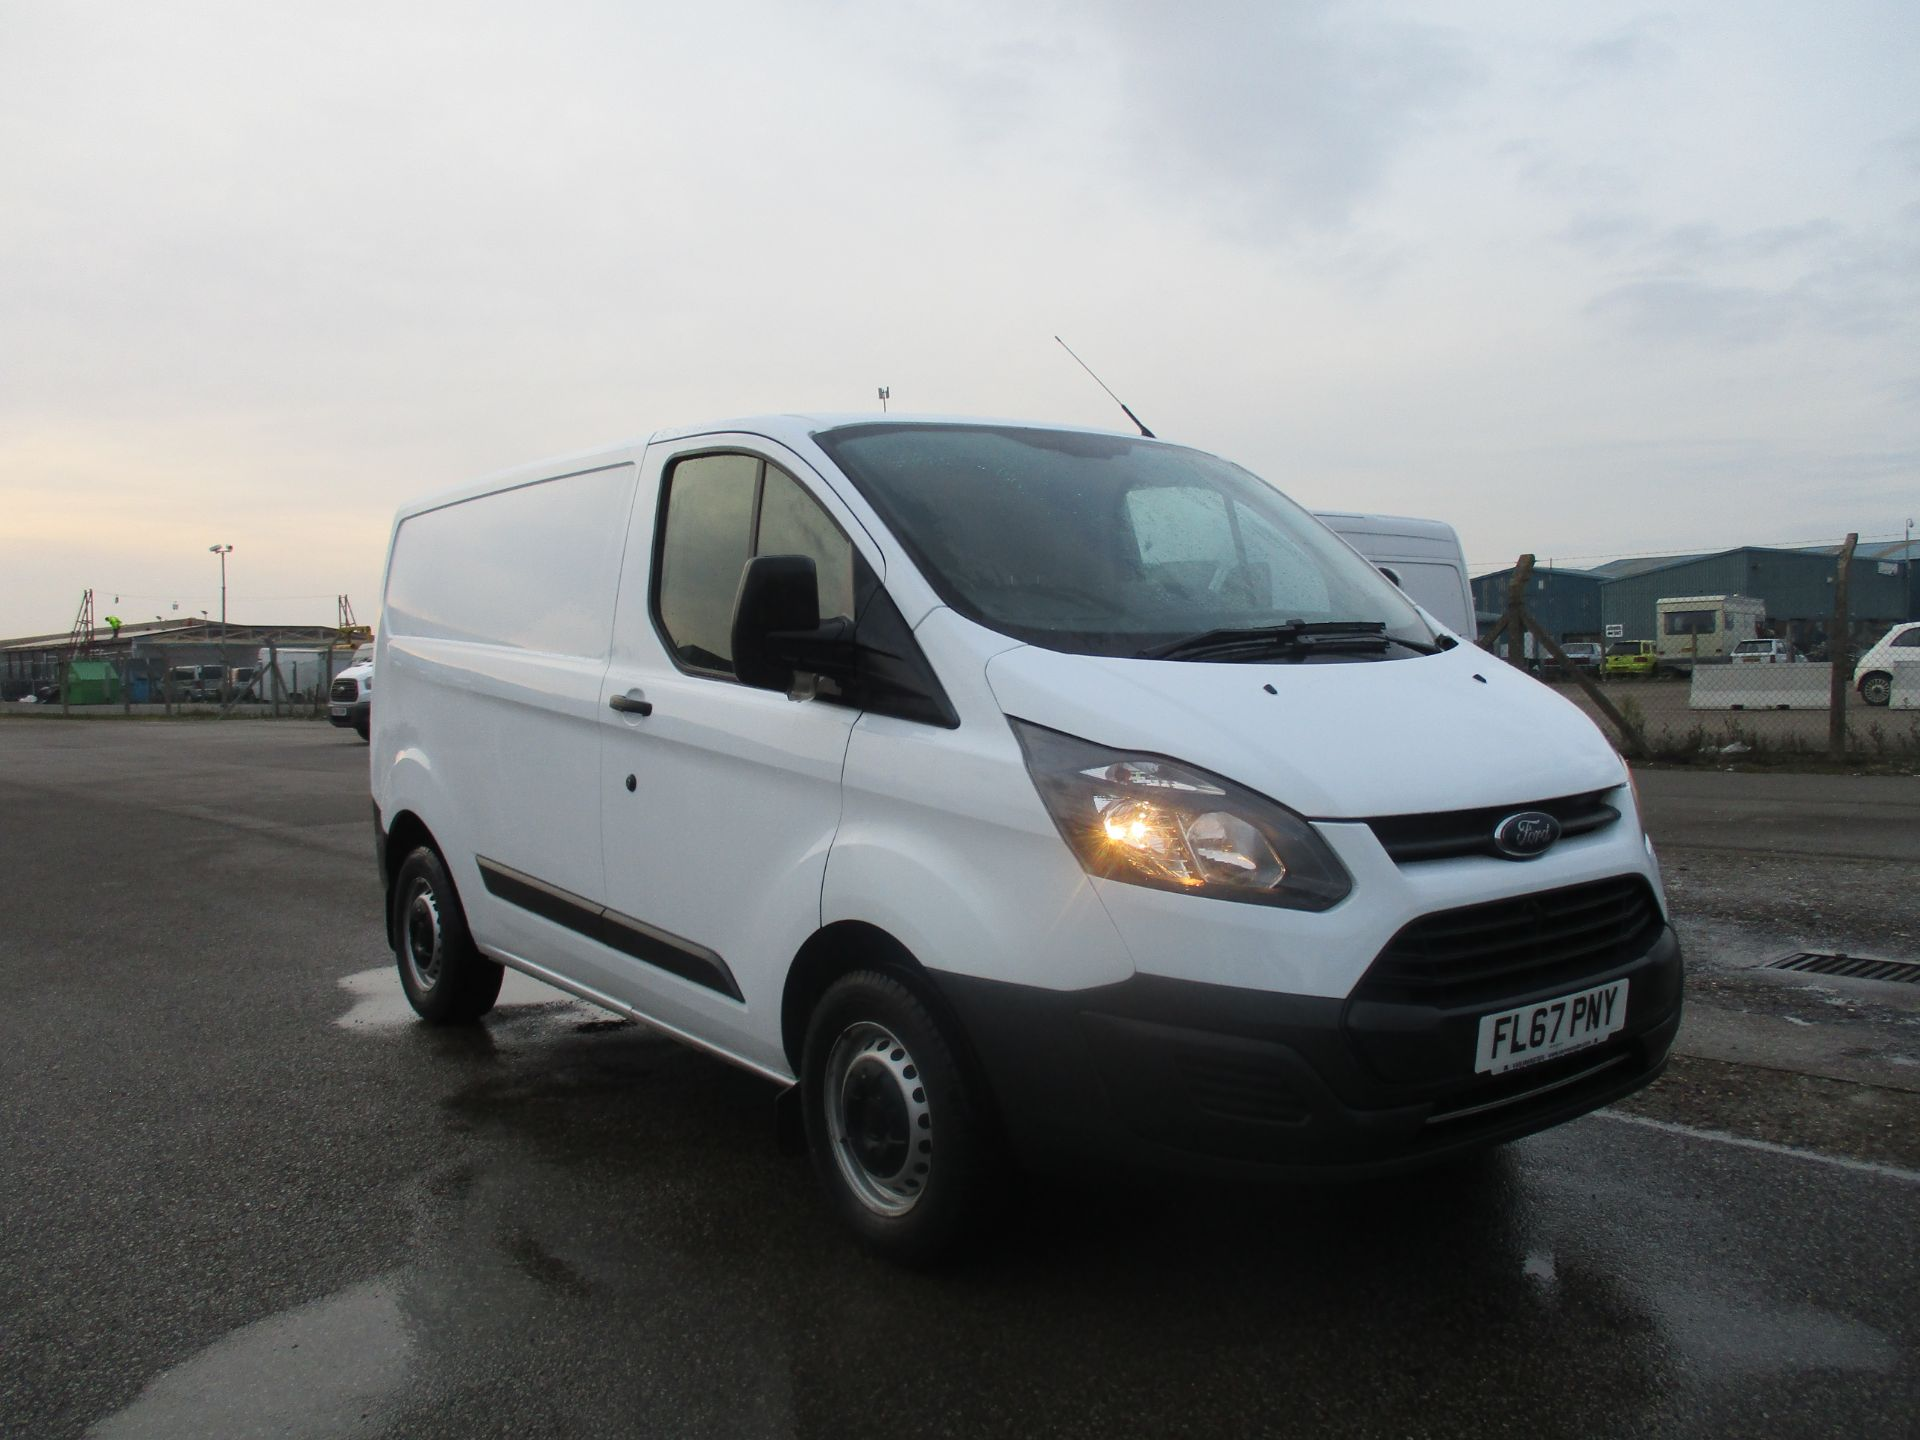 2017 Ford Transit Custom 290 L1 DIESEL FWD 2.0 TDCI 105PS LOW ROOF VAN EURO 6 (FL67PNY)